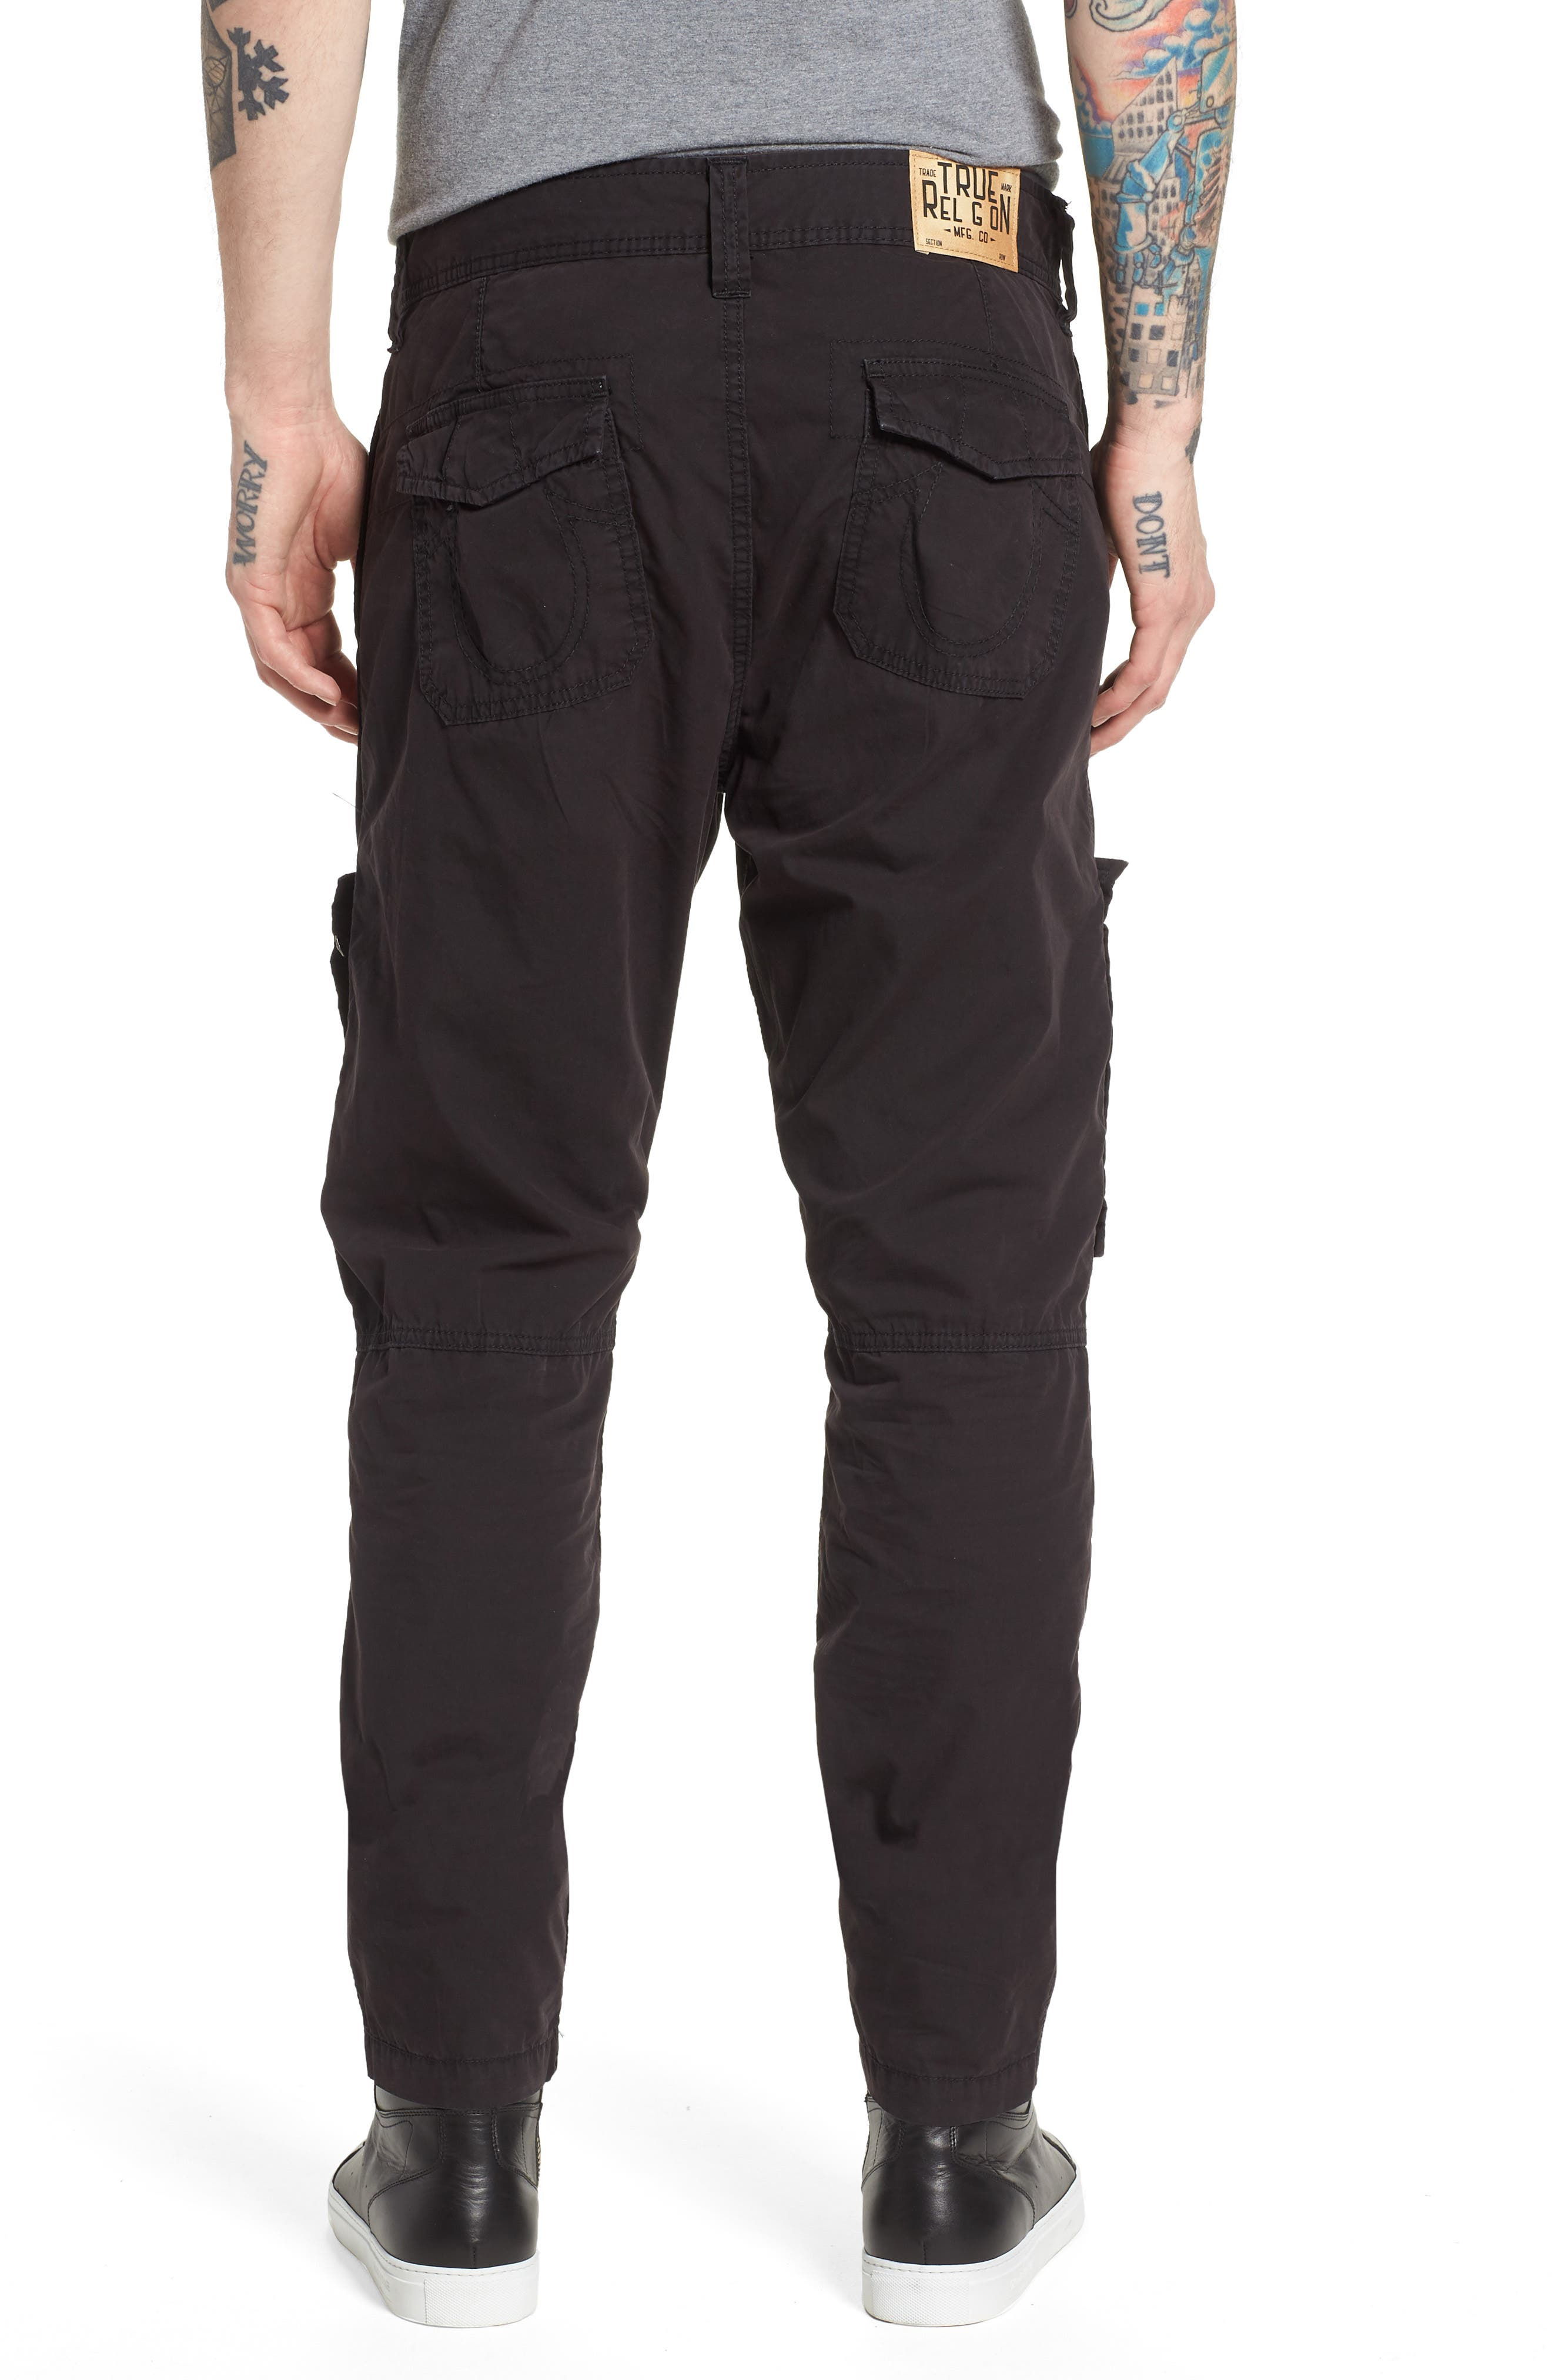 Officer Field Pants,                             Alternate thumbnail 2, color,                             001